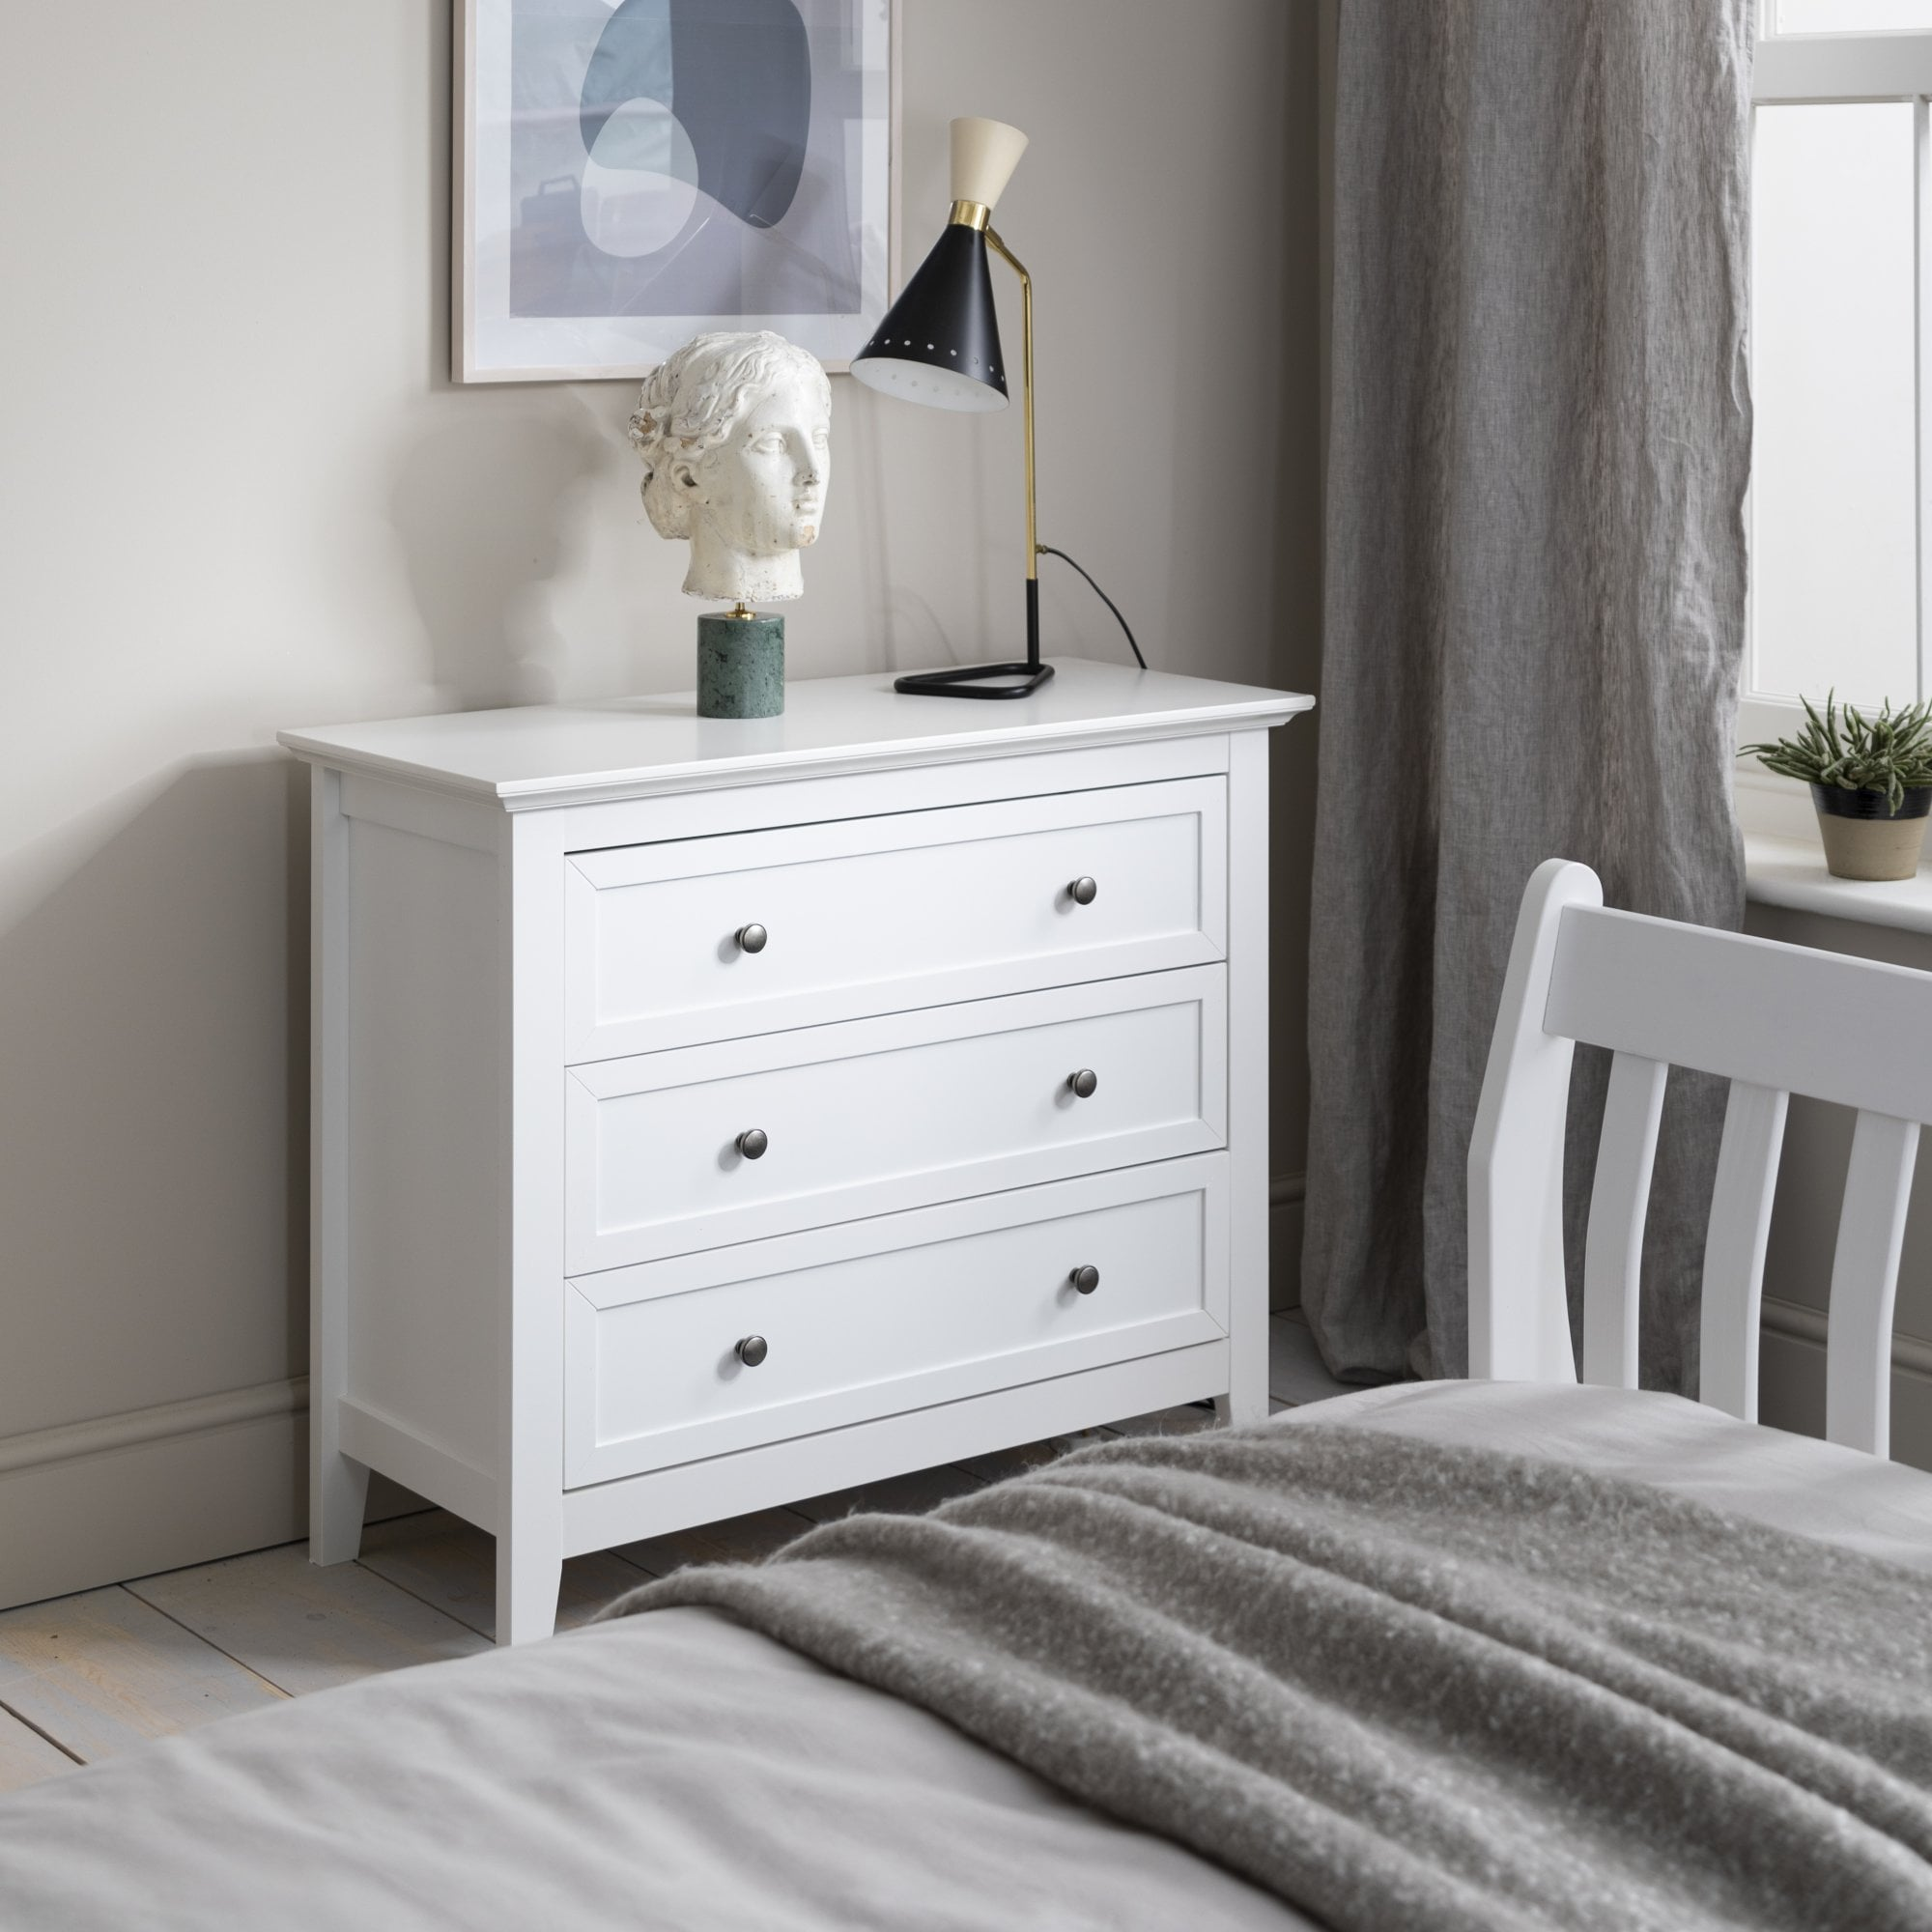 karlstad chest of drawers 3 drawer in classic white